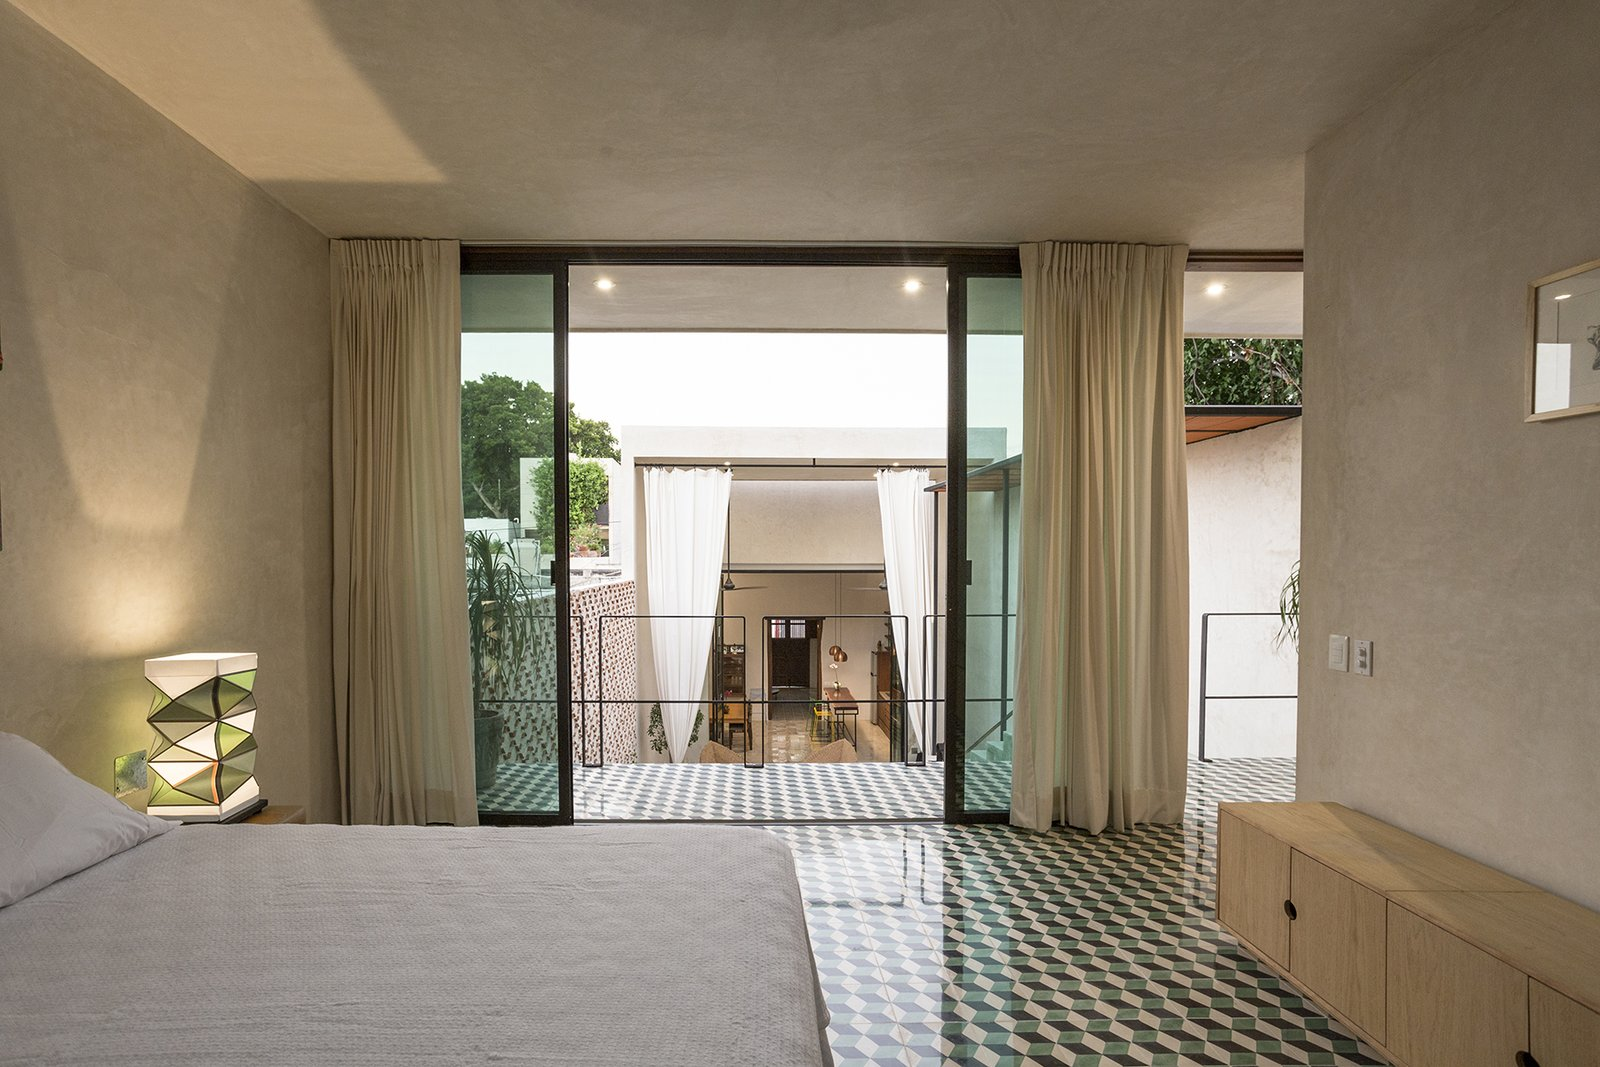 Bedroom, Bench, Table Lighting, Bed, Cement Tile Floor, and Bookcase A great view from the upstairs bedroom  Lemon Tree House by Taller Estilo Arquitectura S de R.L de C.V